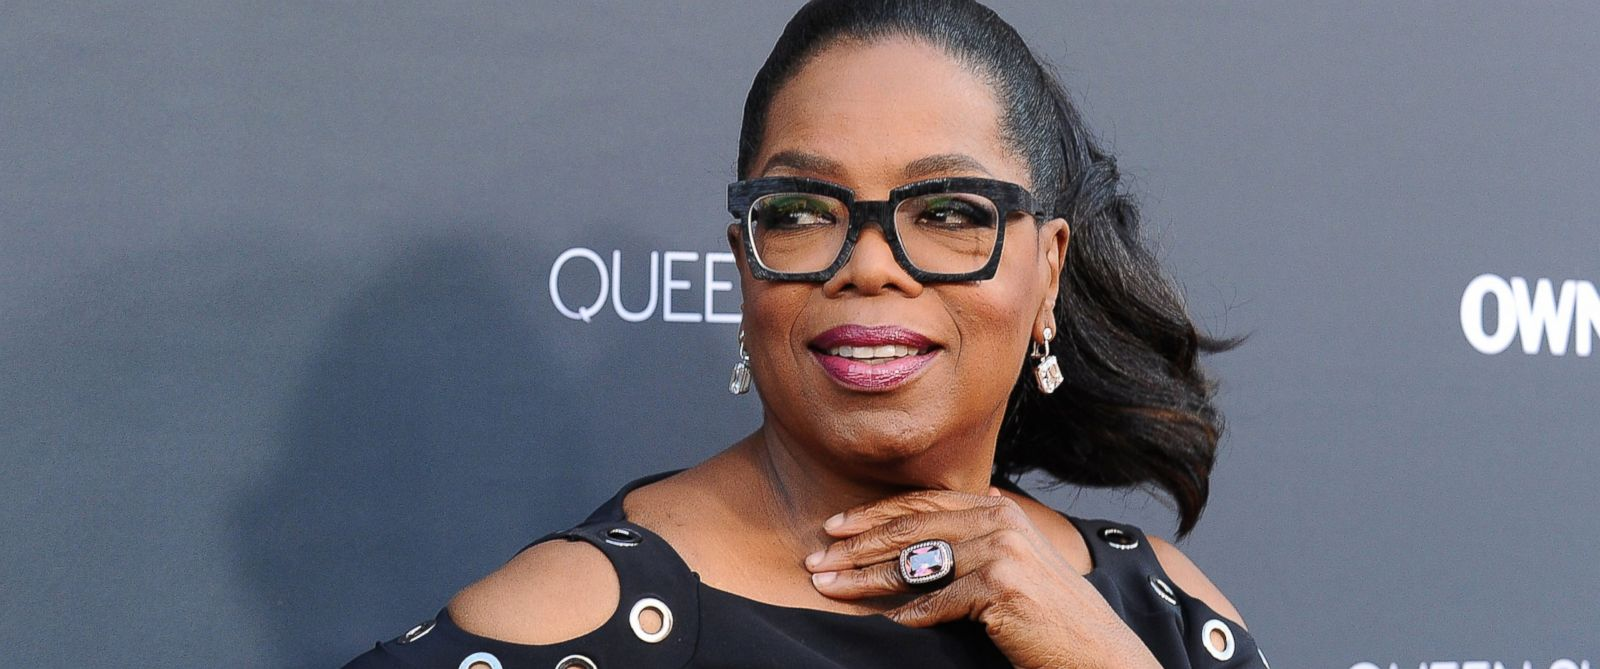 """oprah national essay contest Wwwoprahcom/bookclub official entry and permission form oprah's national high school essay contest topic: """"why is."""